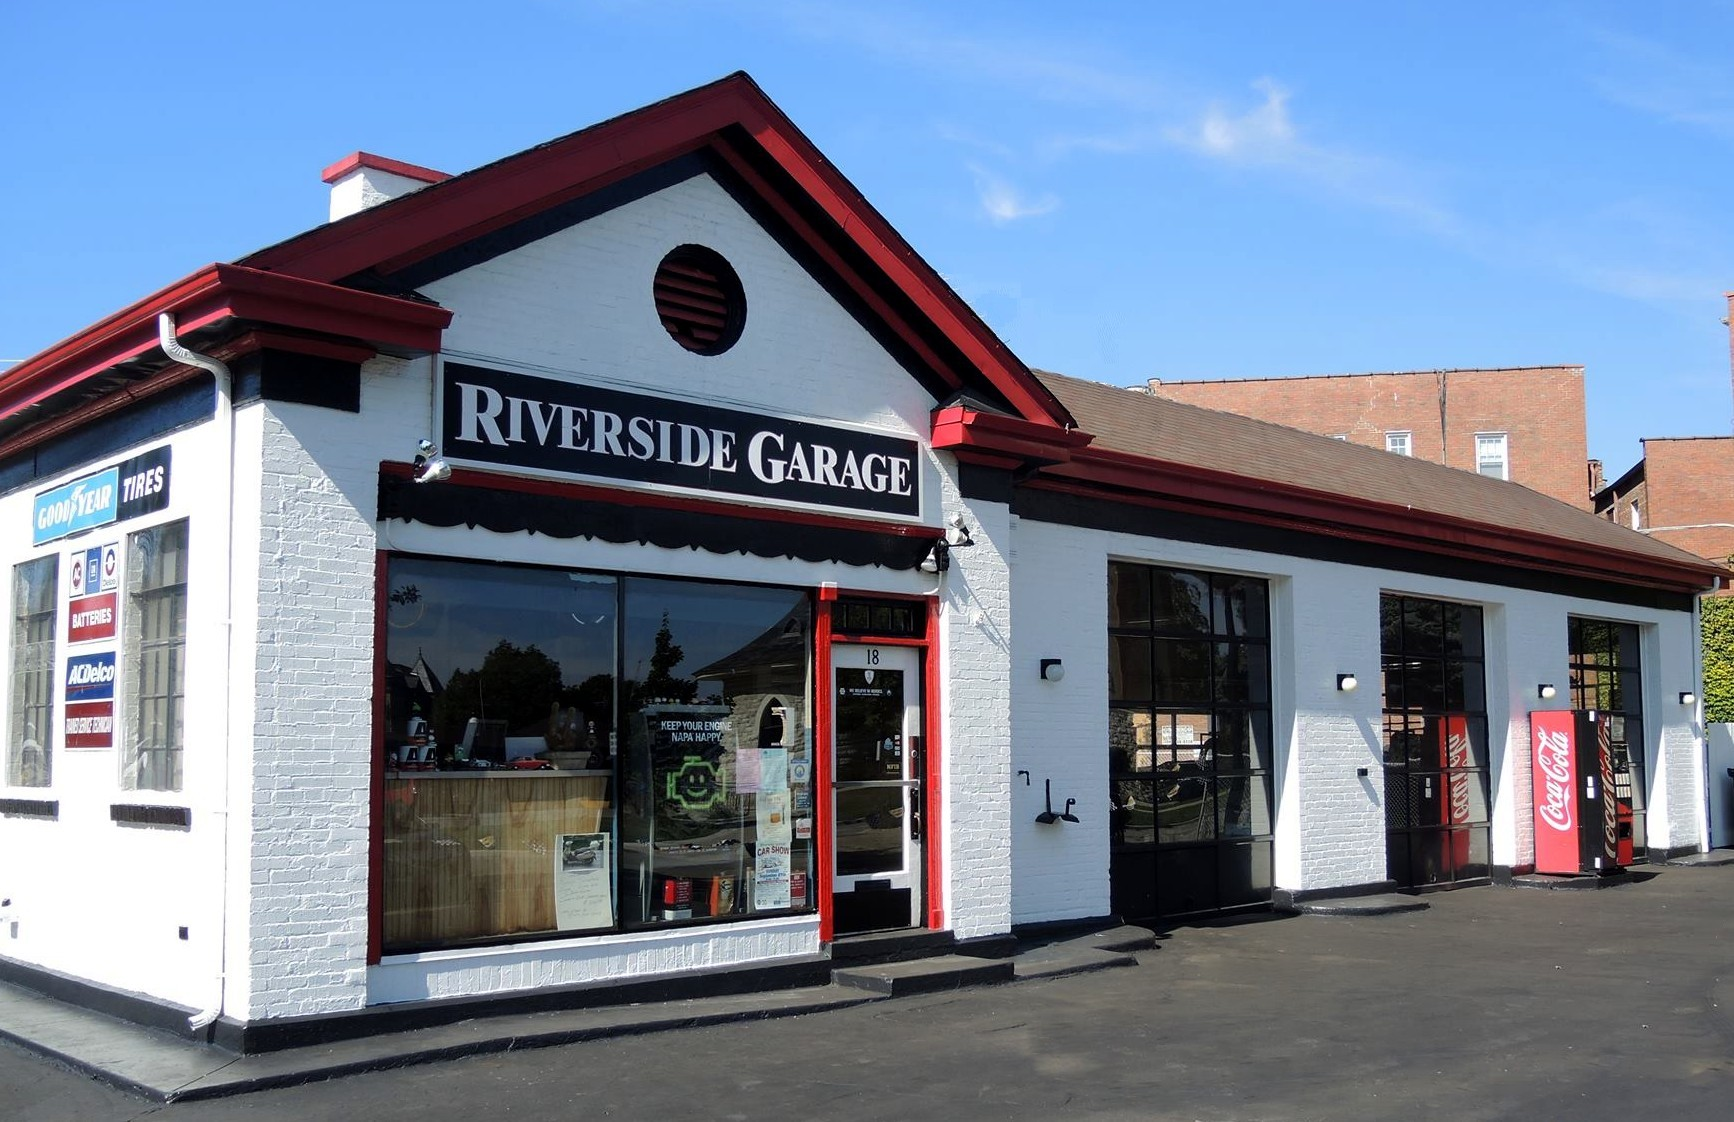 The Riverside Garage in Riverside Illinois